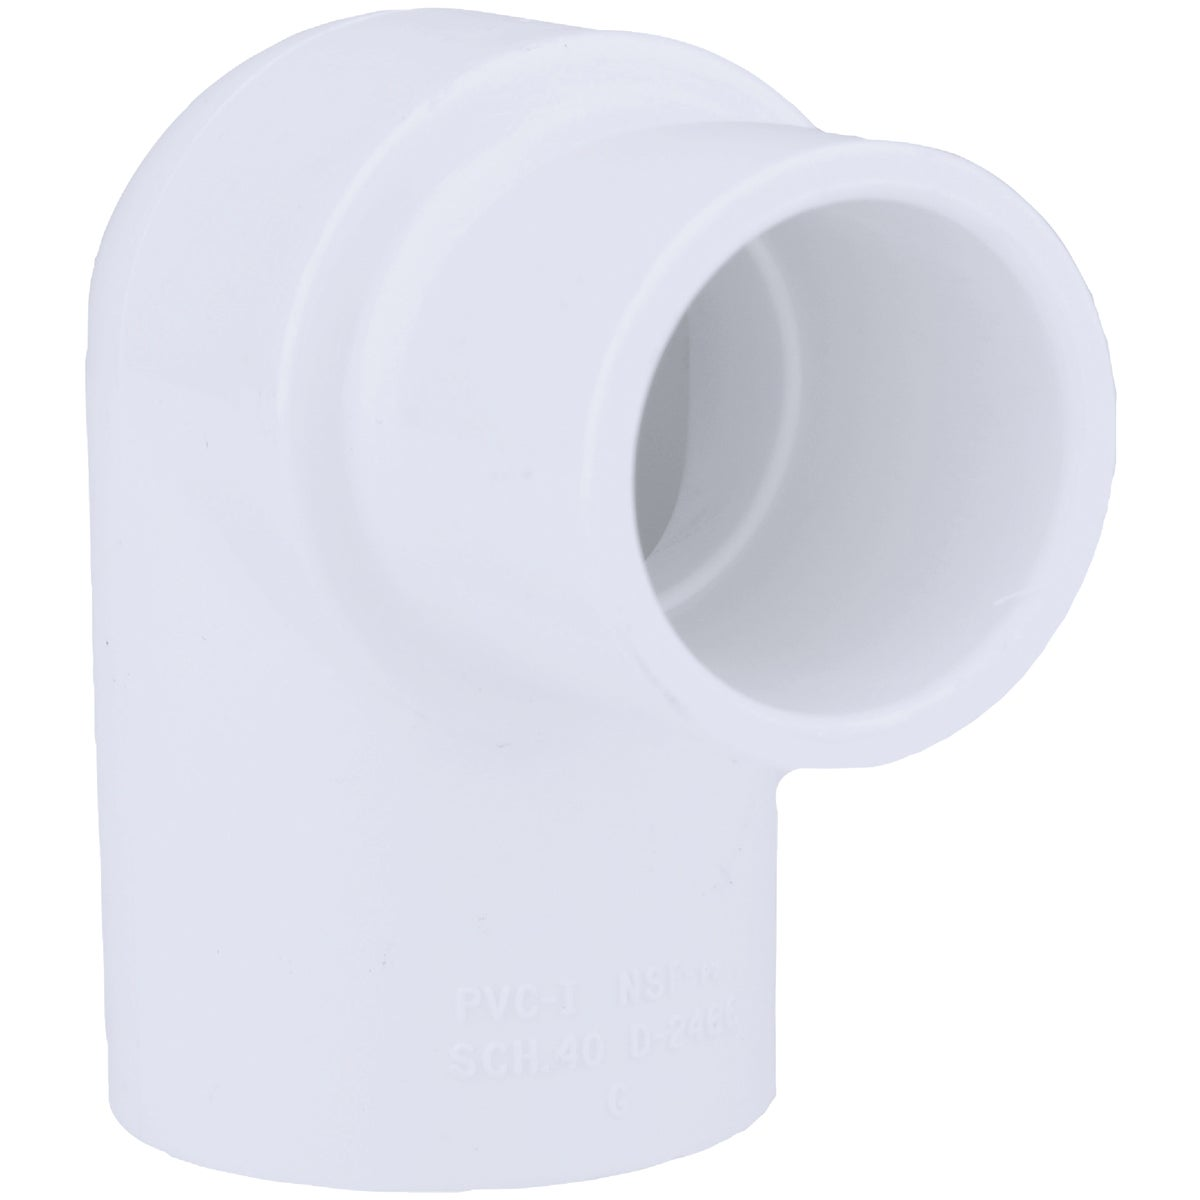 1X3/4 PVC SXS 90D ELBOW - 30717 by Genova Inc